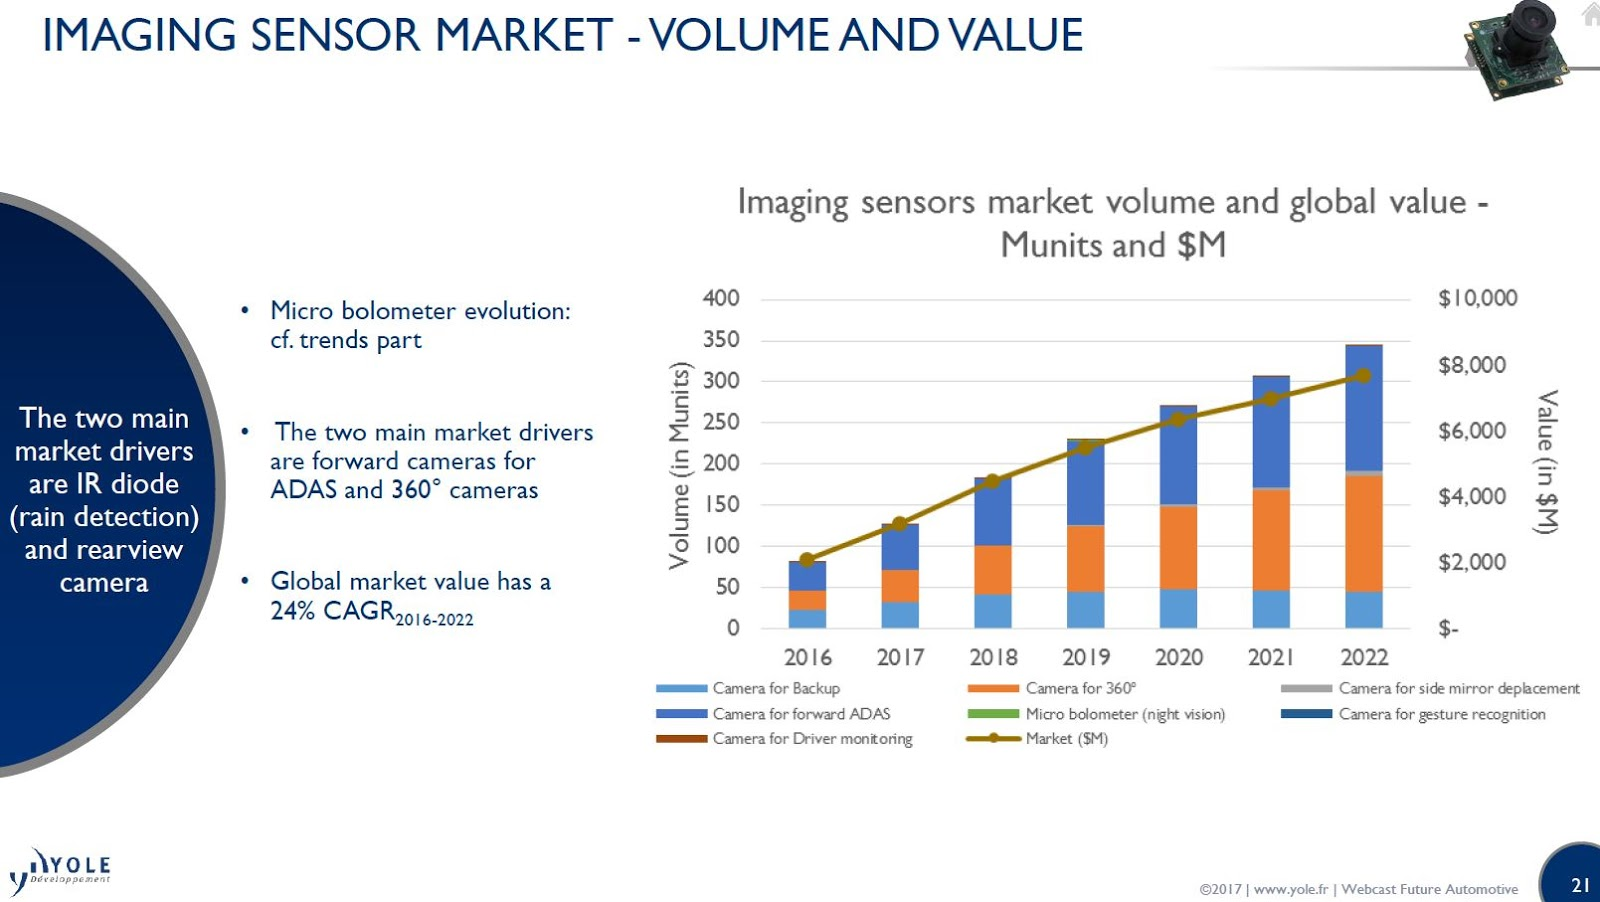 automotive sensors market 2020 global analysis Yole's market forecast model is based on the following elementary structured  blocks: yole's analysis  the little world of automotive sensors has recently been  shaken  high-end vehicles, with deep learning image analysis.